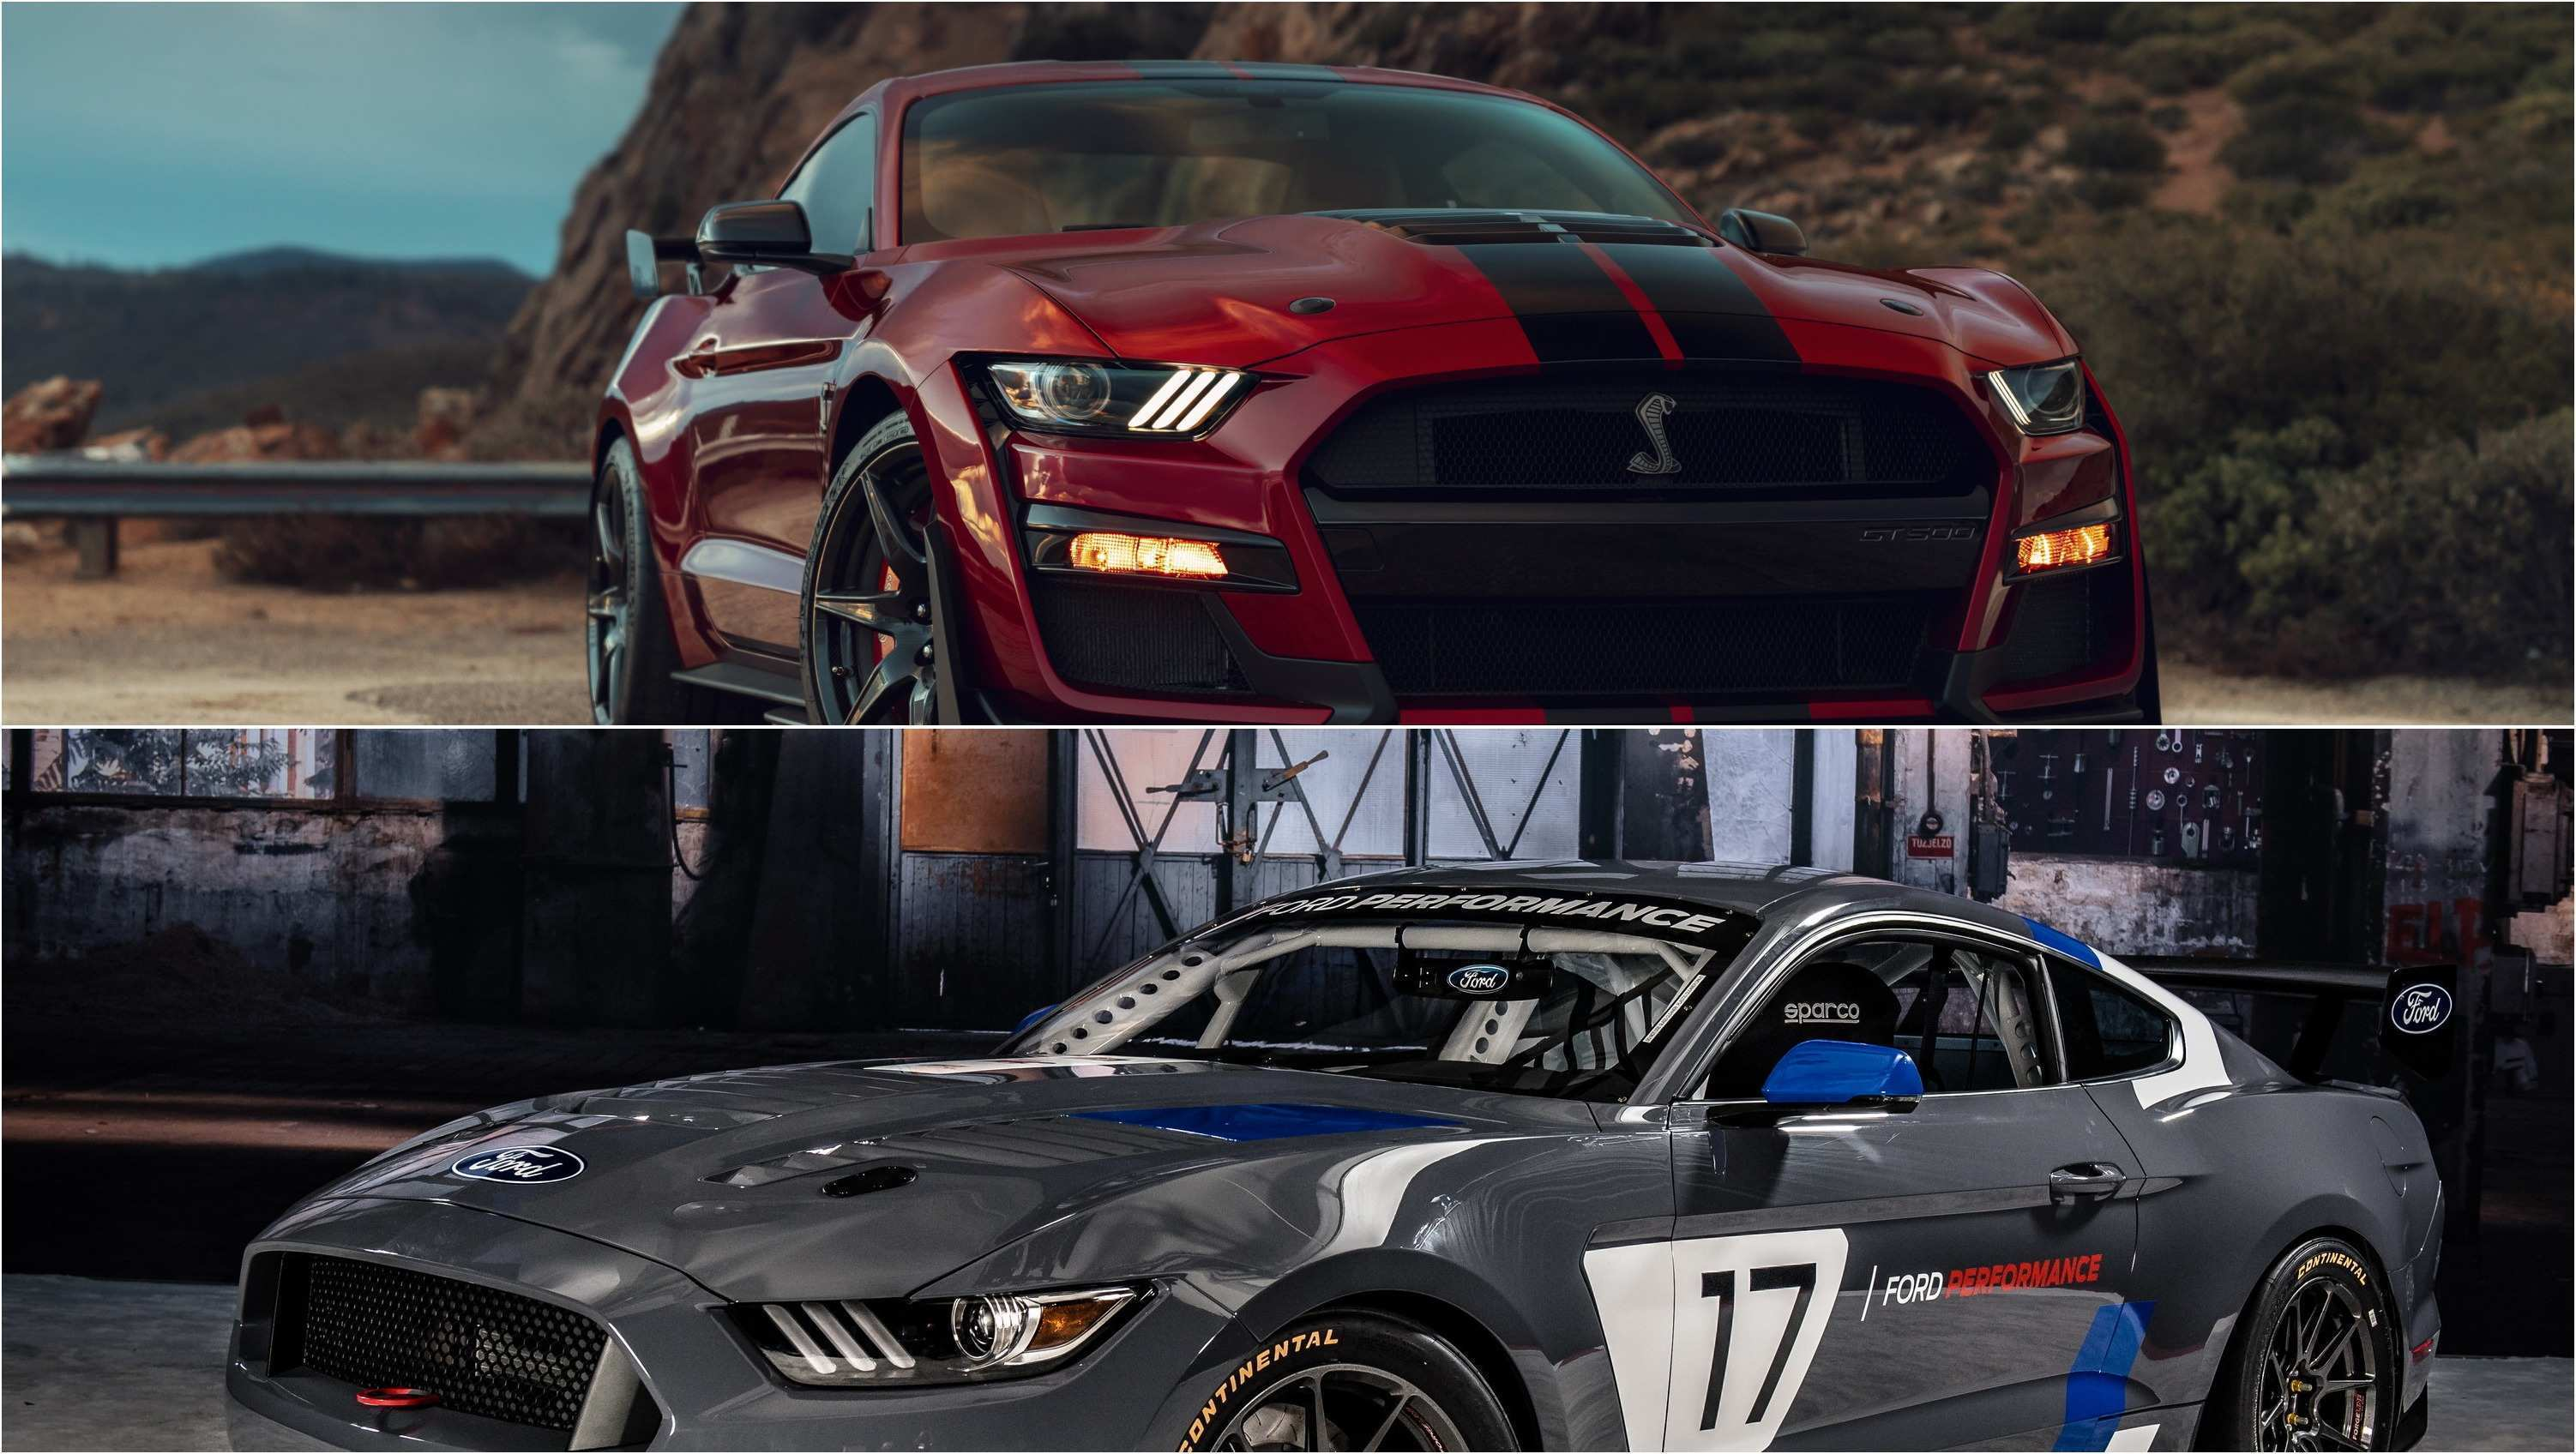 34 The Best 2020 Mustang Rocket History